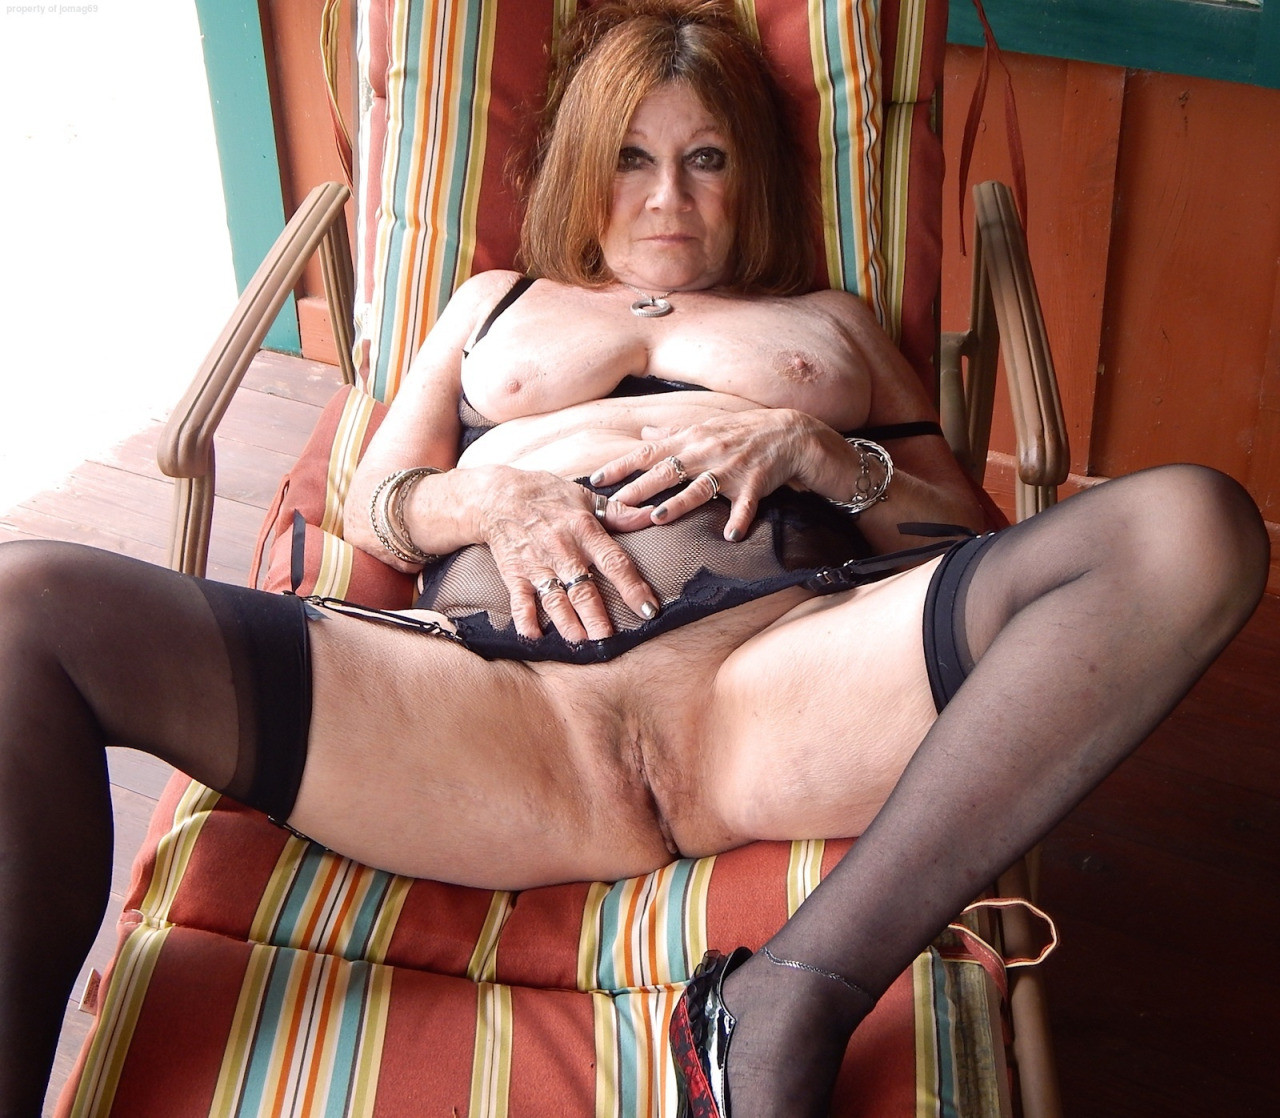 Agree, rather Bbws grannies stockings dirty spread. thank for